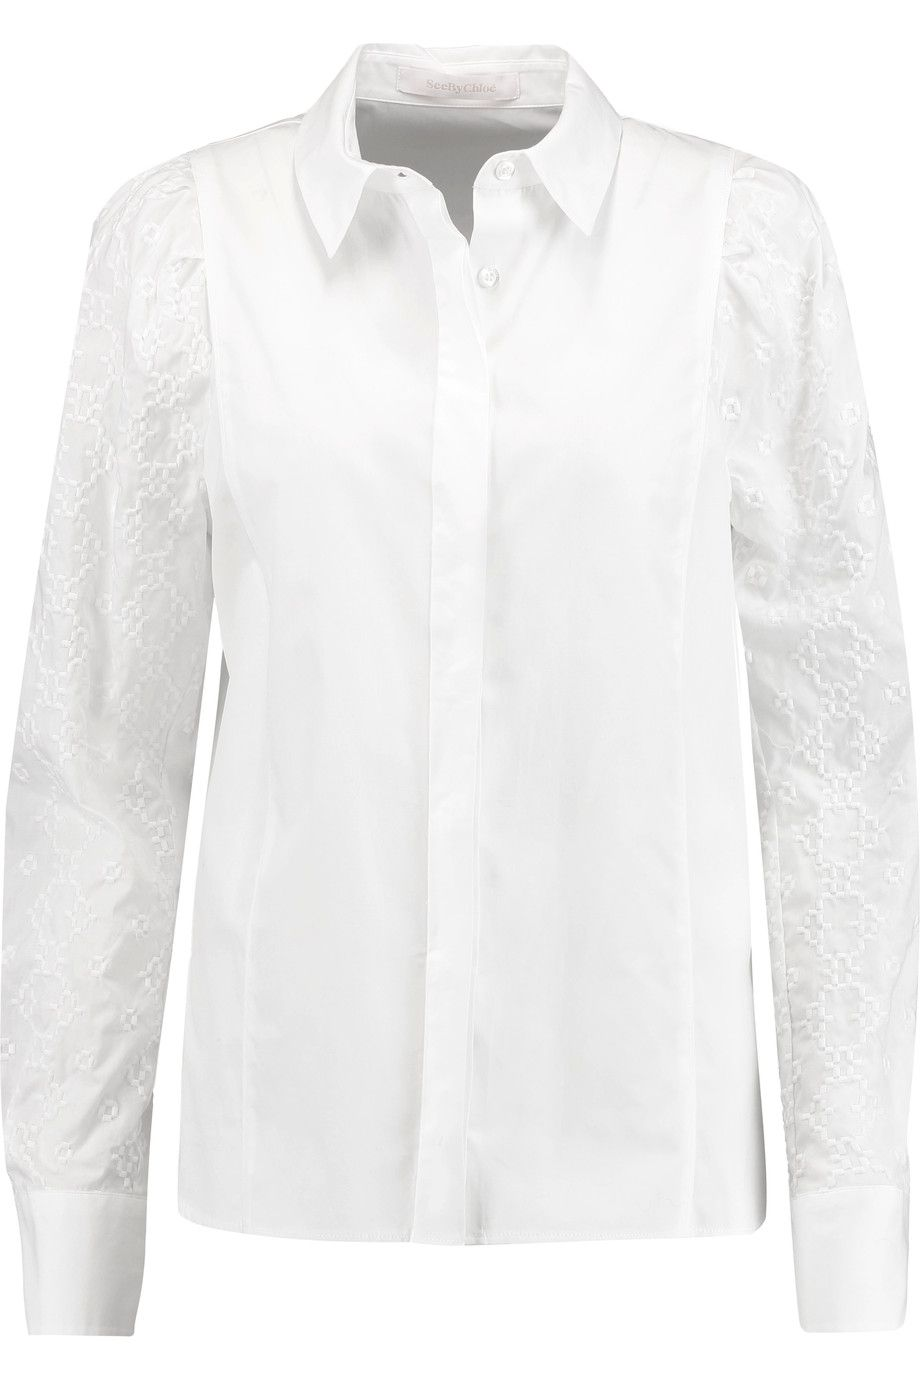 Ruched Cotton-poplin Blouse - White Chloé Clearance Wiki Cheap Get To Buy Outlet 2018 Newest KGjBu7Ib